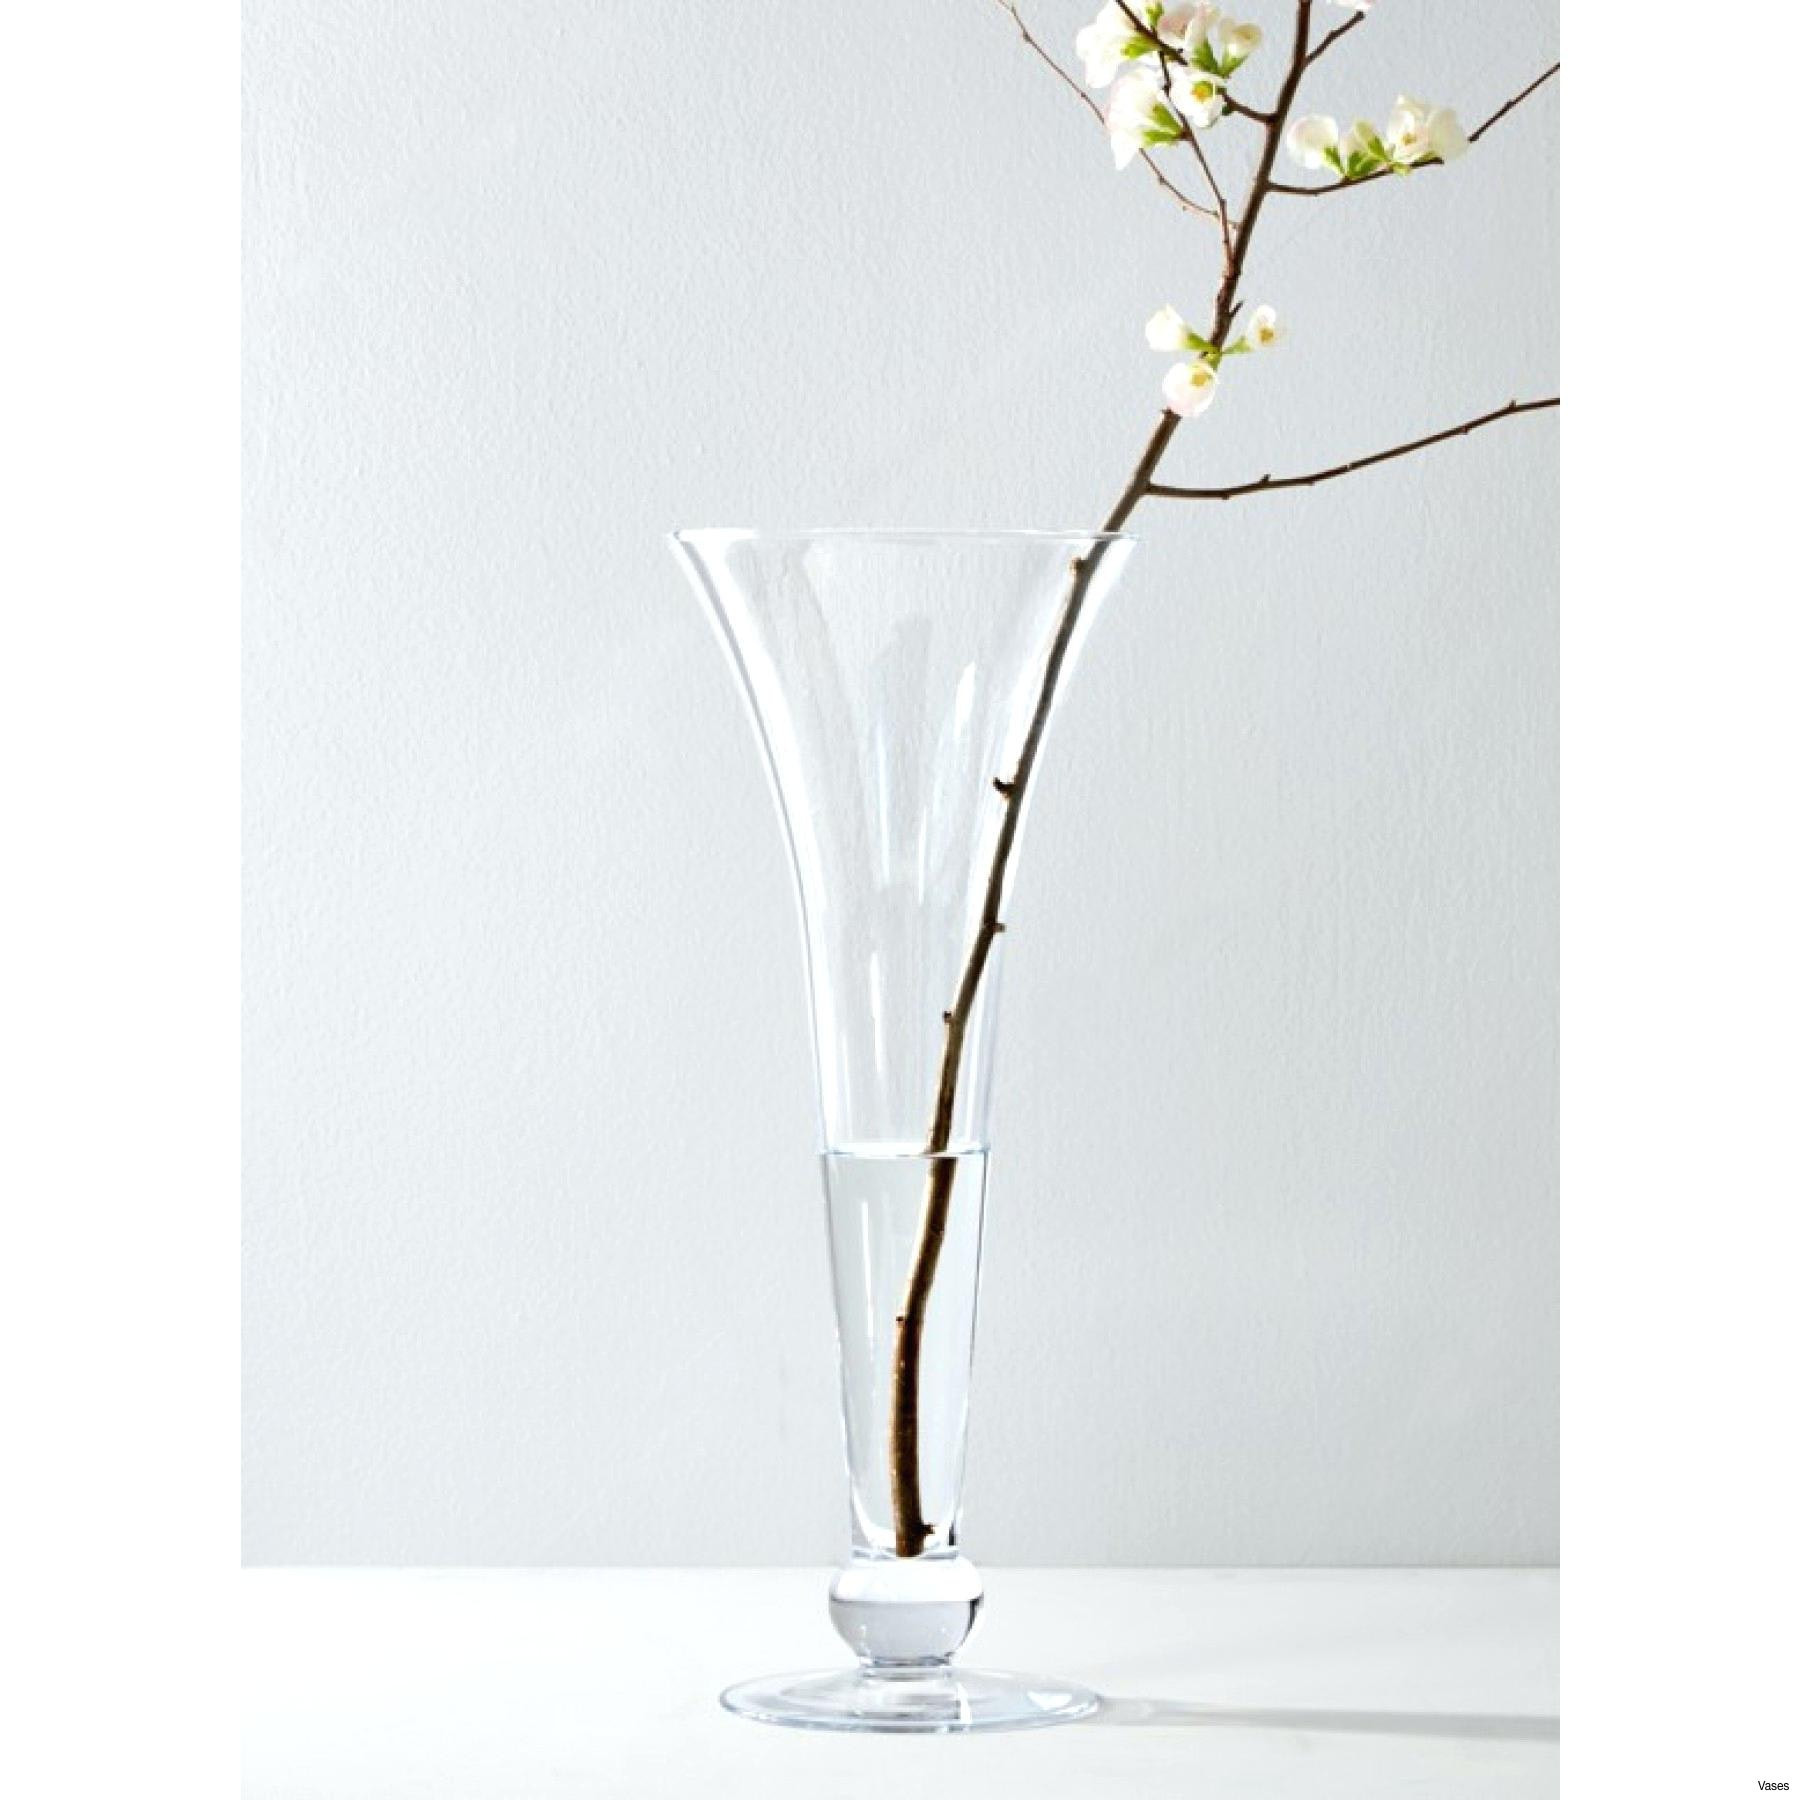 wholesale martini glass vases centerpieces of 15 elegant glass trumpet vase bogekompresorturkiye com pertaining to plastic trumpet vase bulk centerpieces diy weddingh vases glass for inspiration gold centerpieces